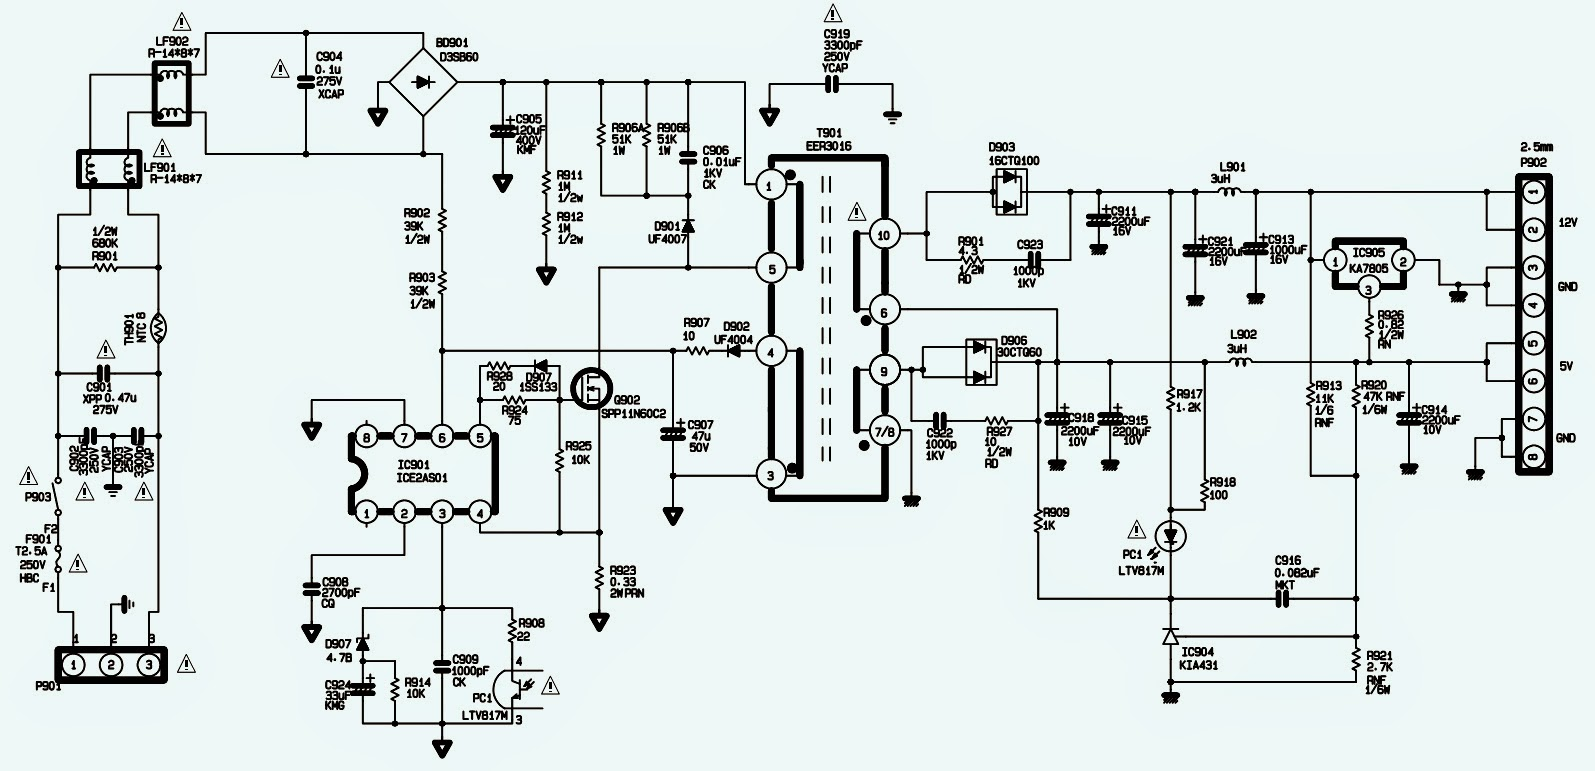 1.bmp wiring schematic diagram lg flatron l1810b monitor smps schematic lg wiring diagrams at crackthecode.co